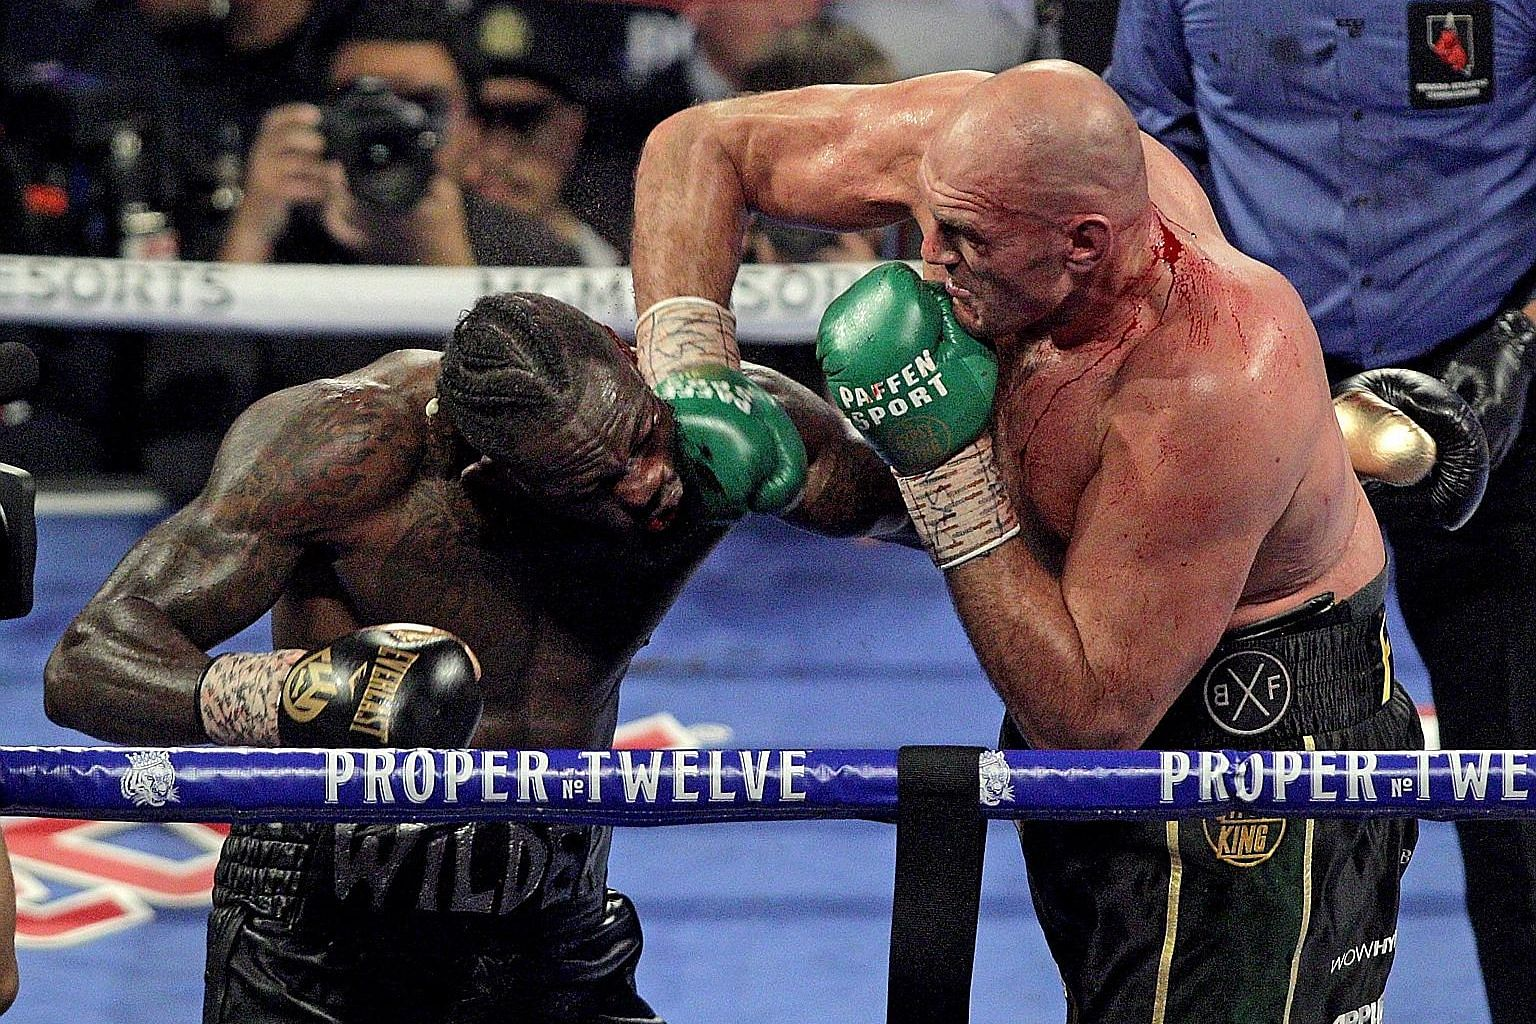 Tyson Fury landing a right to the face of Deontay Wilder during their heavyweight title bout in Las Vegas. The Briton landed 82 of 267 punches as his rival's corner threw in the towel in the seventh round.